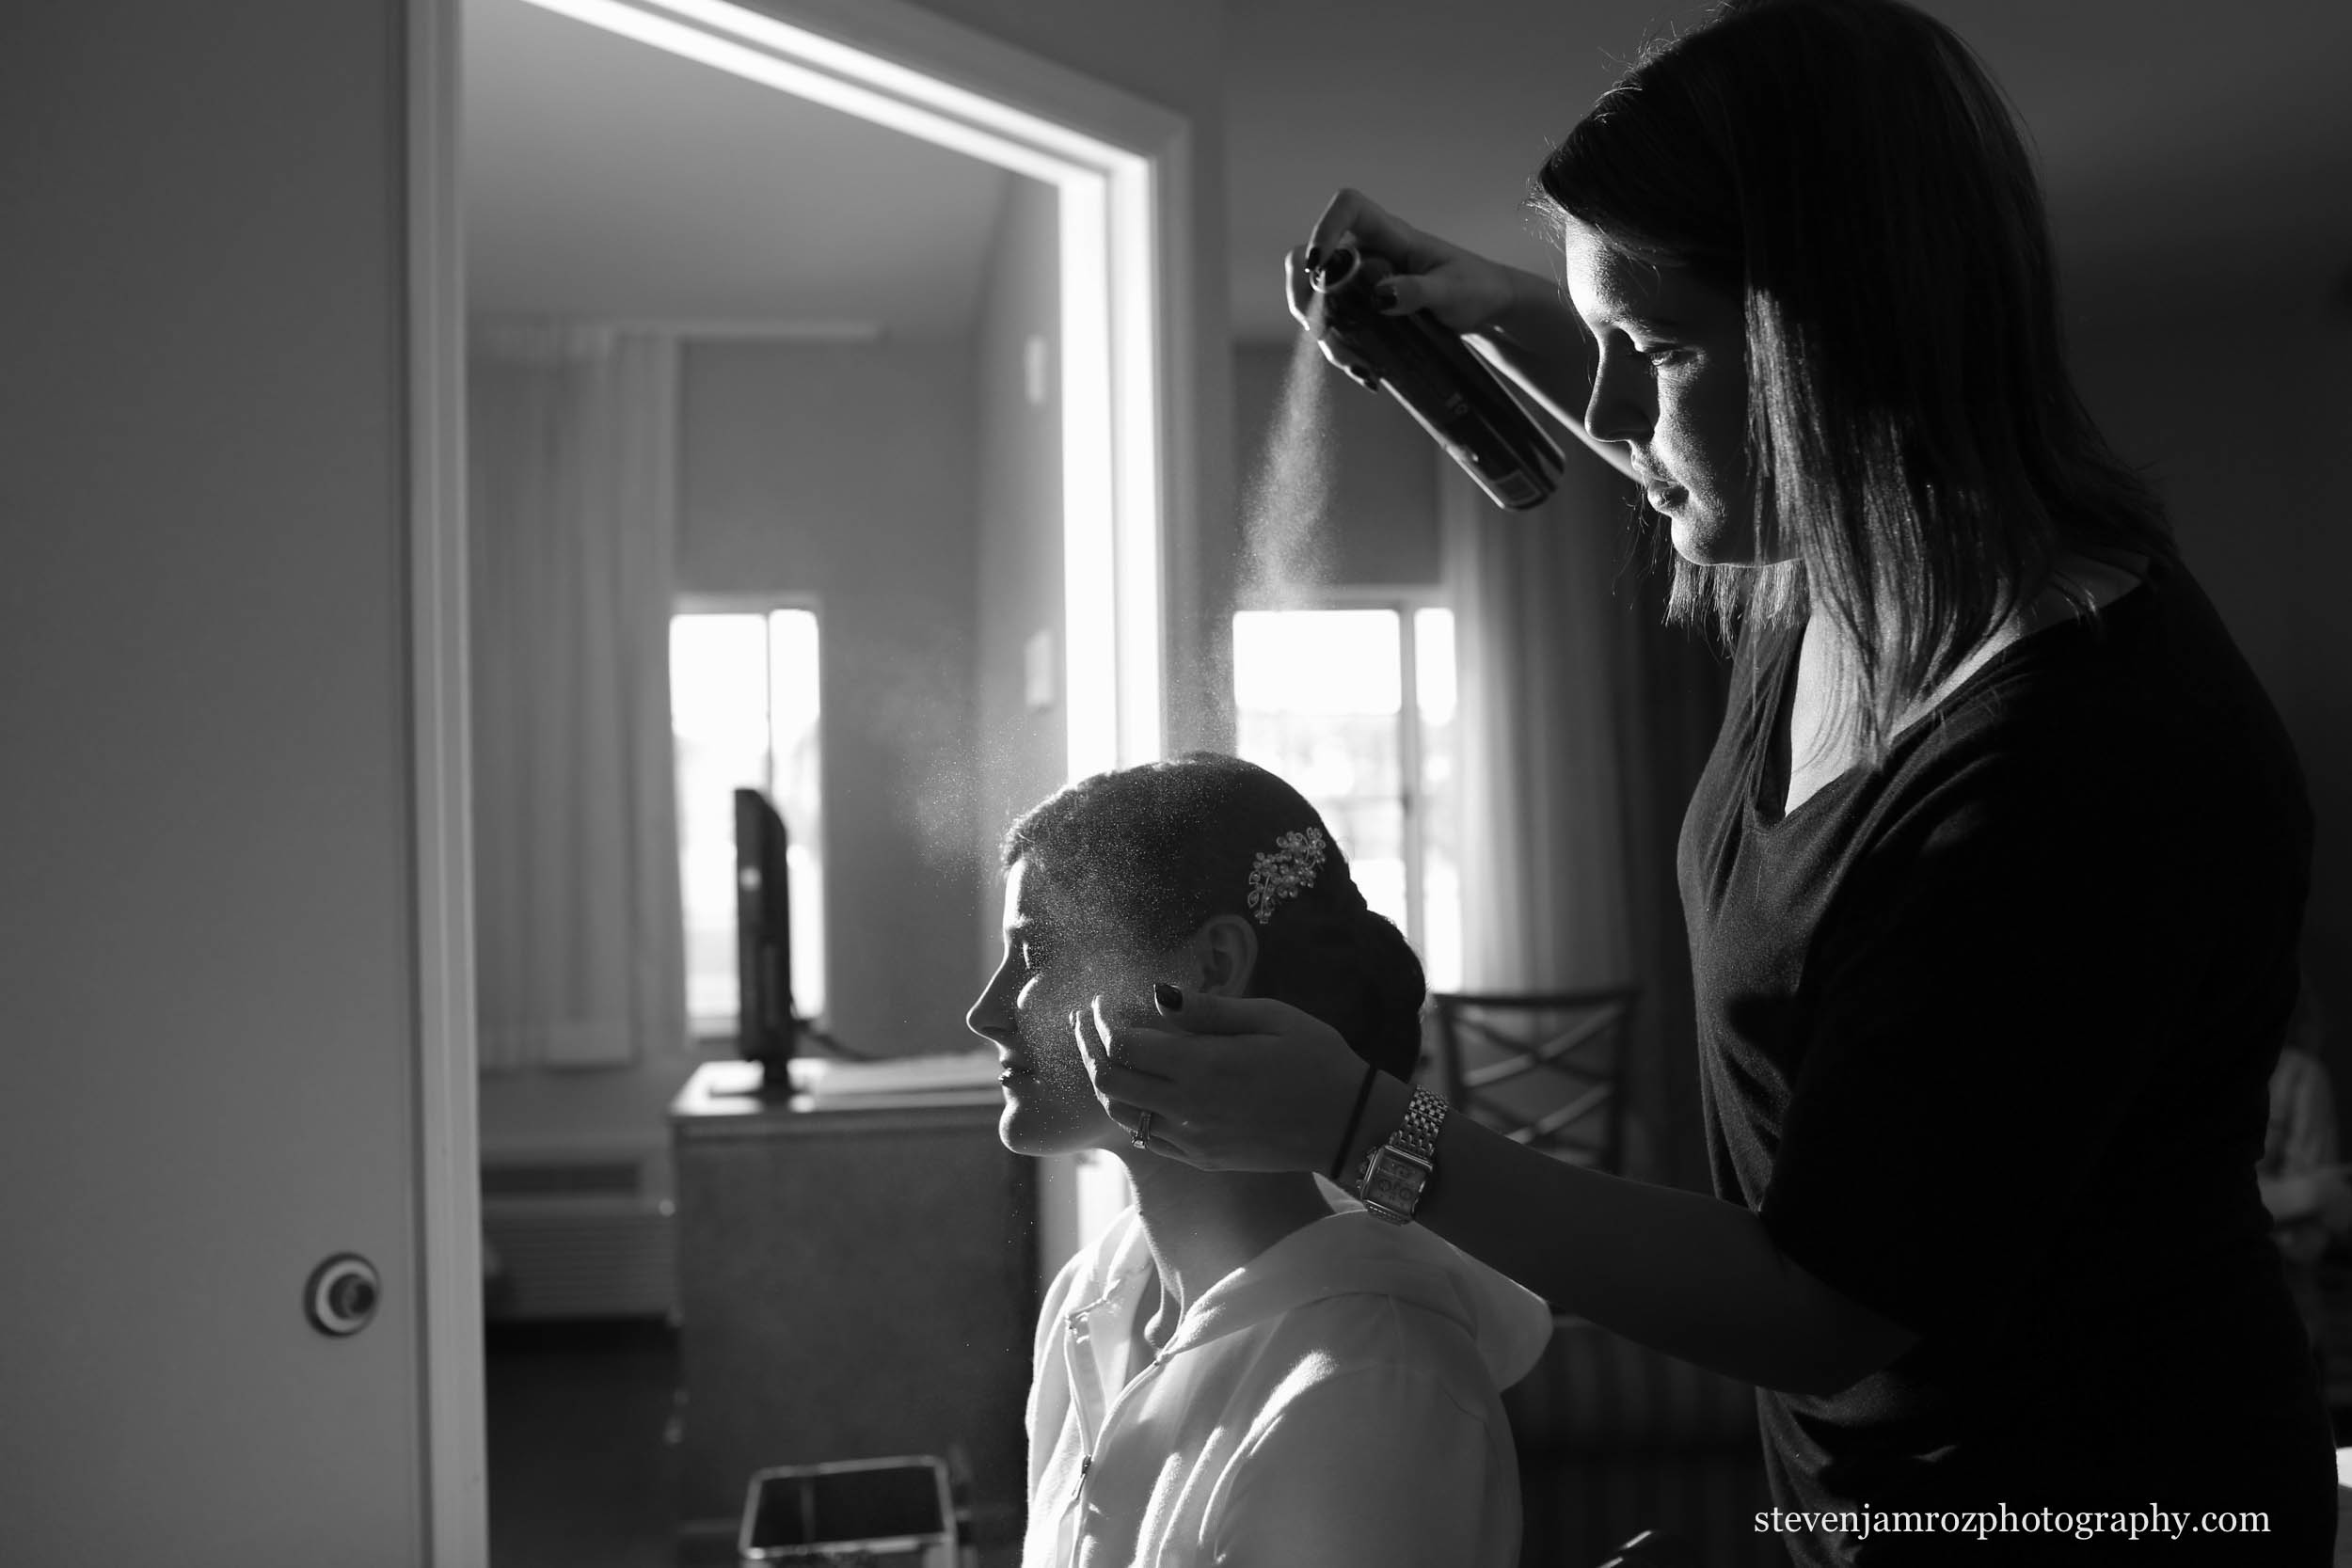 spraying-brides-hair-wedding-get-ready-steven-jamroz-photography-0508.jpg